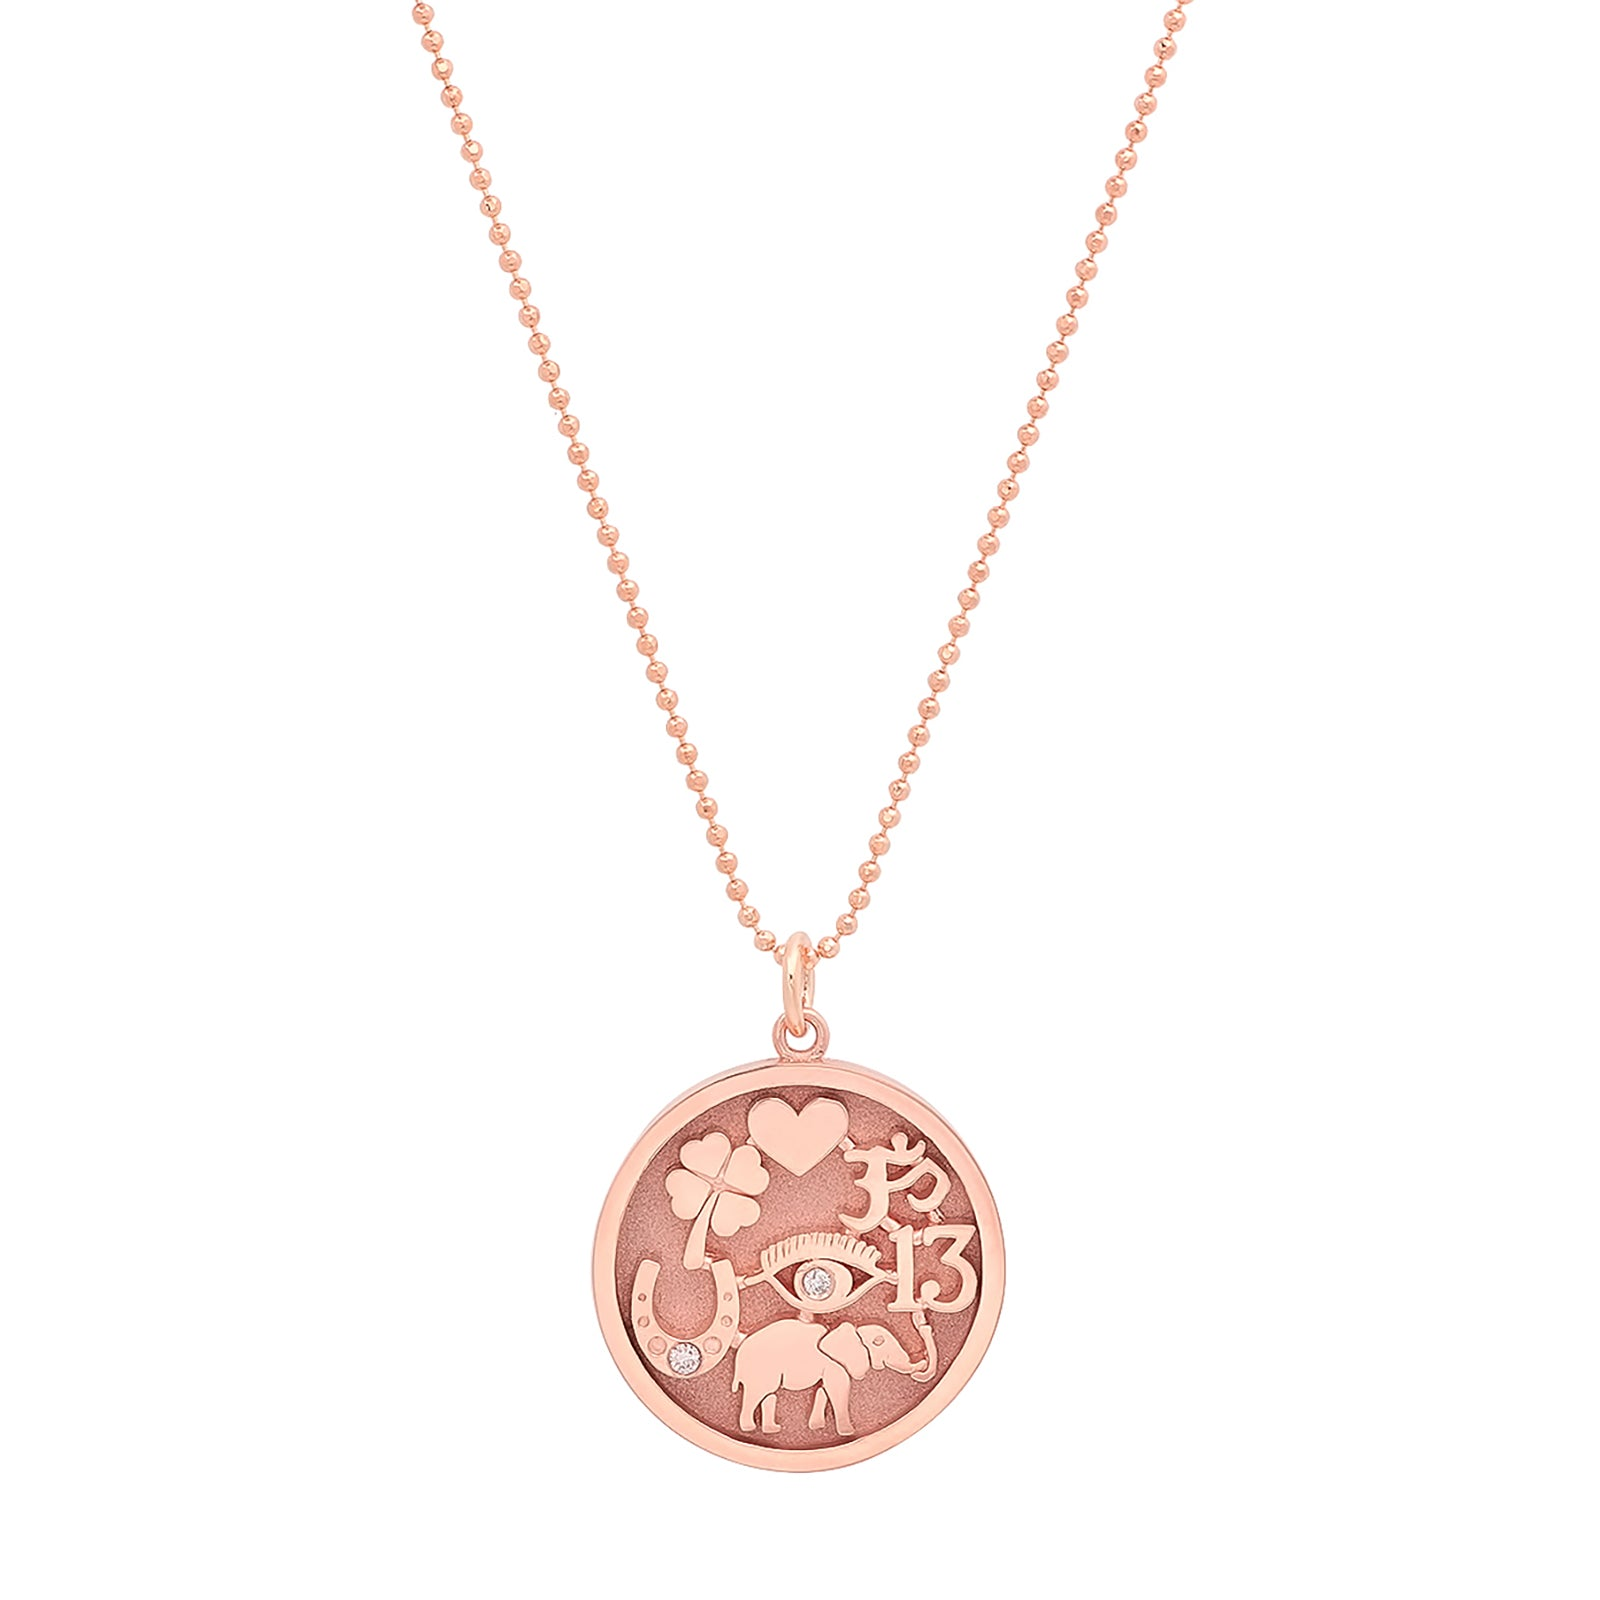 Jennifer Meyer Good Luck Pendant Necklace - Rose Gold - Necklaces - Broken English Jewelry